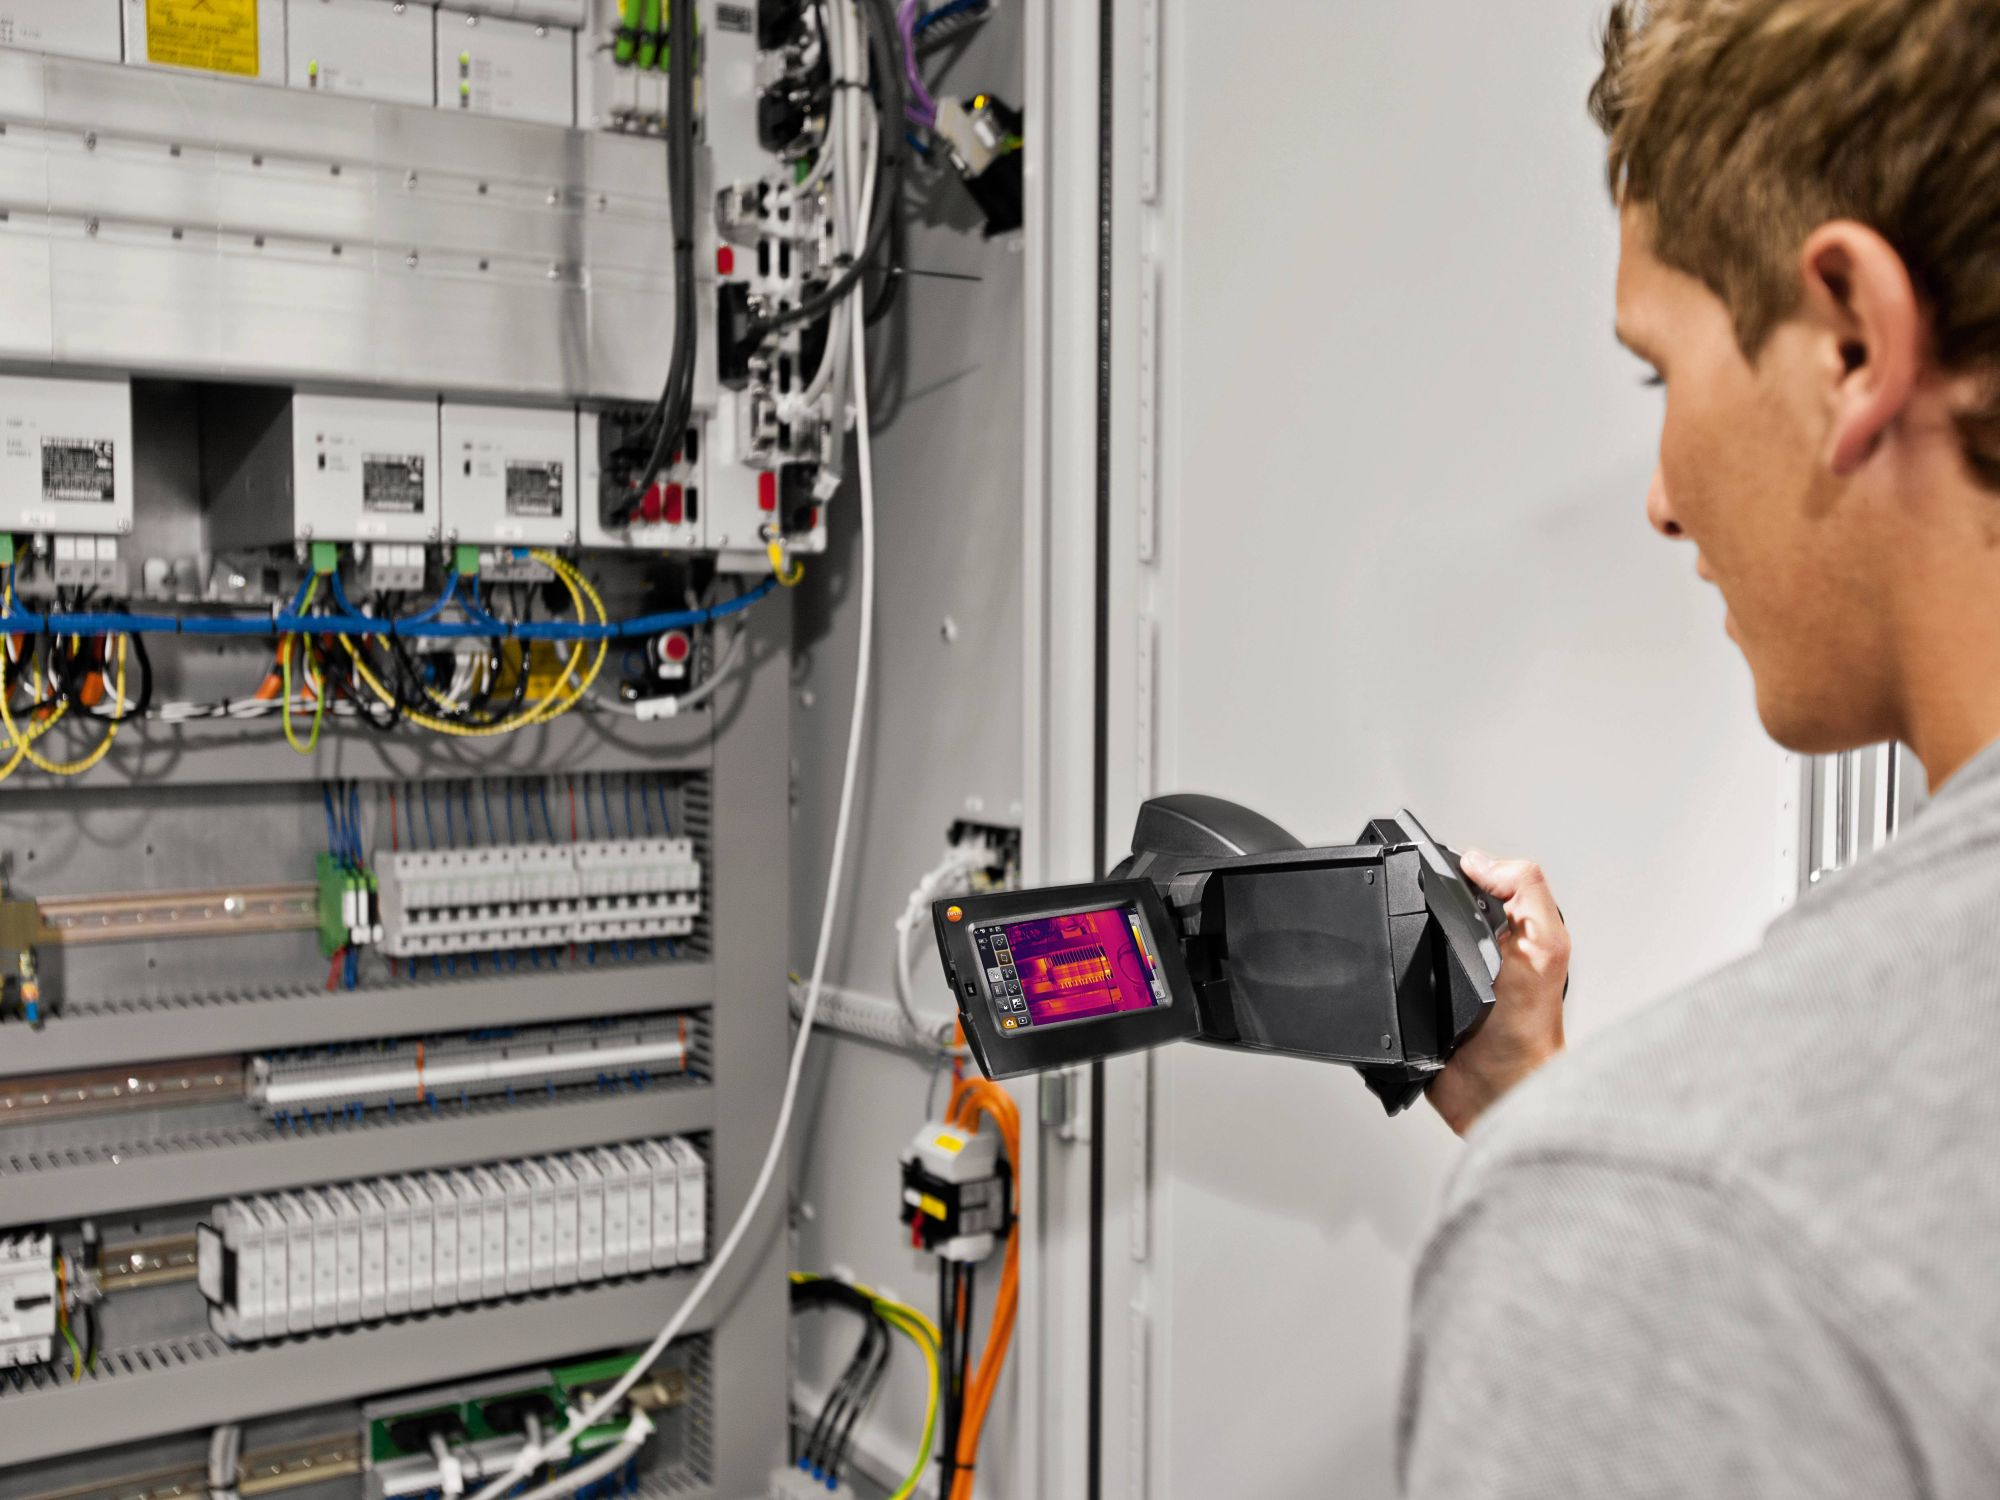 Maintenance of switch cabinets with thermal imager